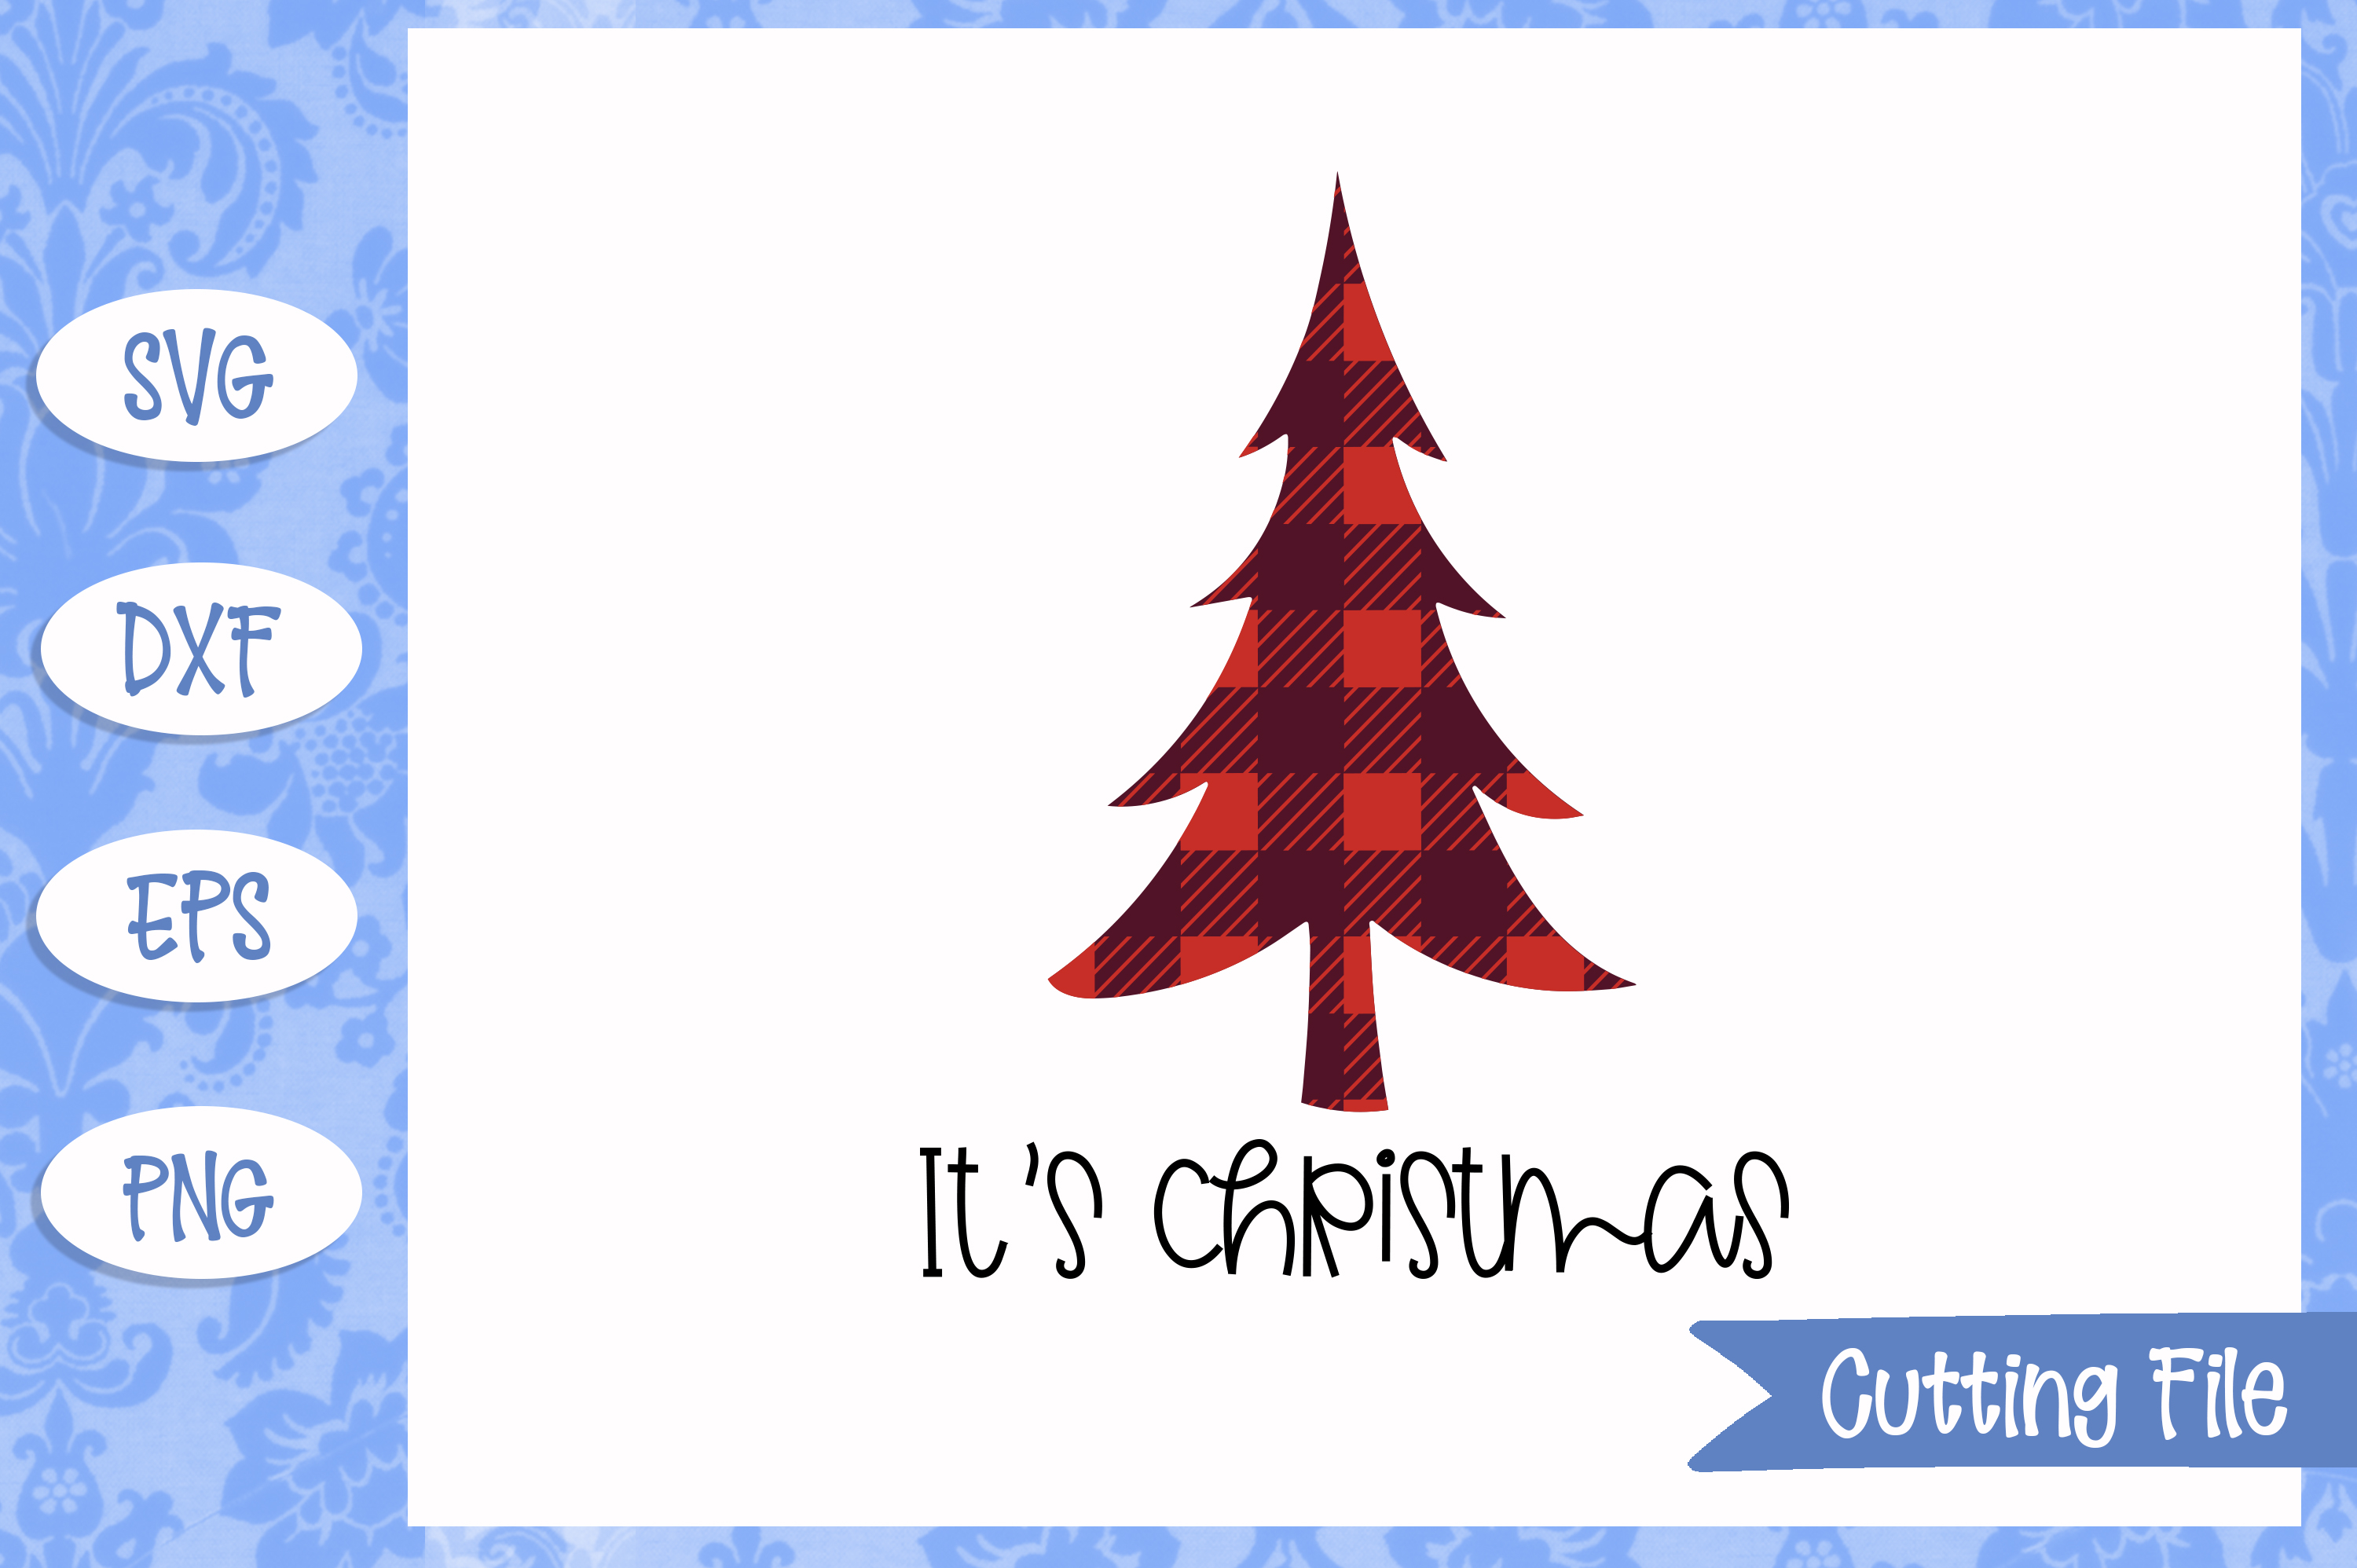 It's Christmas Cut File example image 1